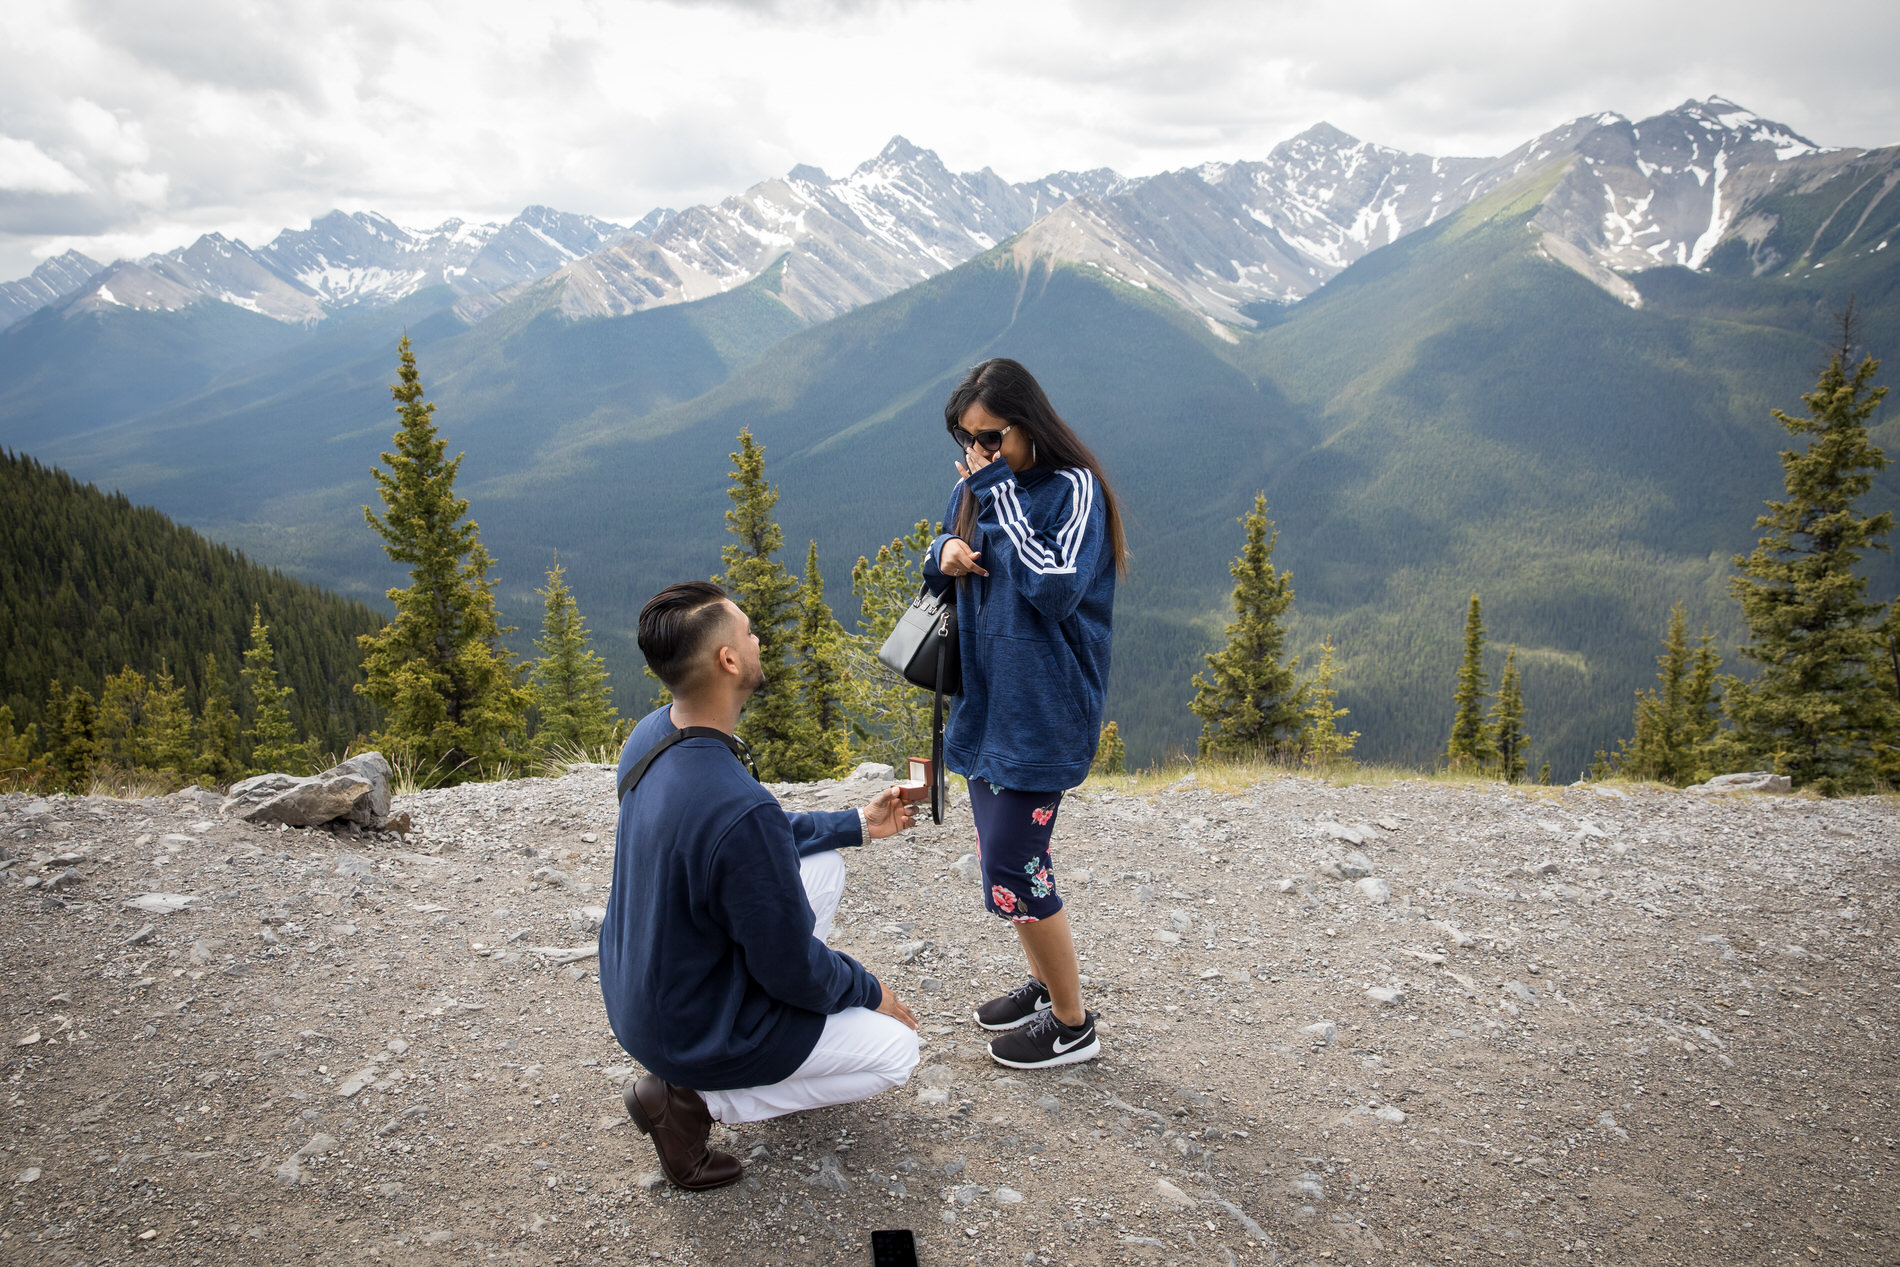 Surprise Proposal Mt Sulphur Banff Gondola